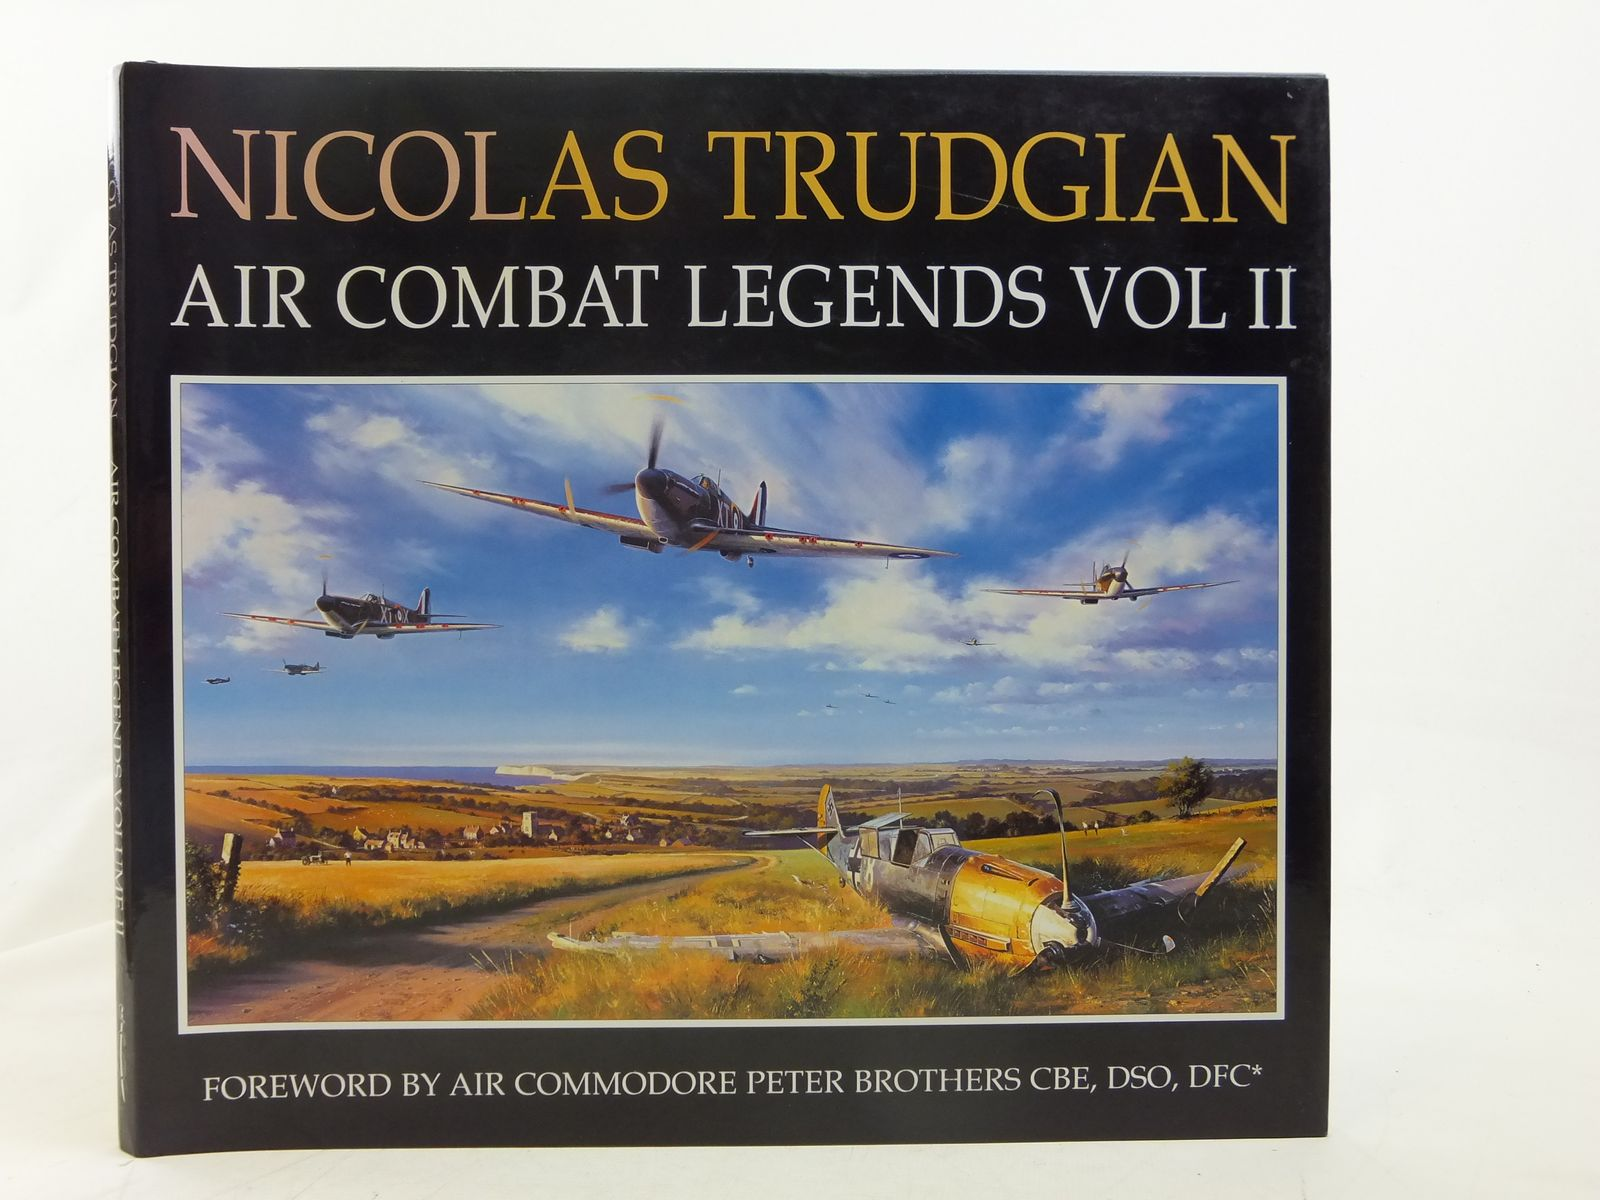 Photo of NICOLAS TRUDGIAN AIR COMBAT LEGENDS VOLUME II written by Trudgian, Nicolas illustrated by Trudgian, Nicolas published by Spellmount Ltd. (STOCK CODE: 2116548)  for sale by Stella & Rose's Books